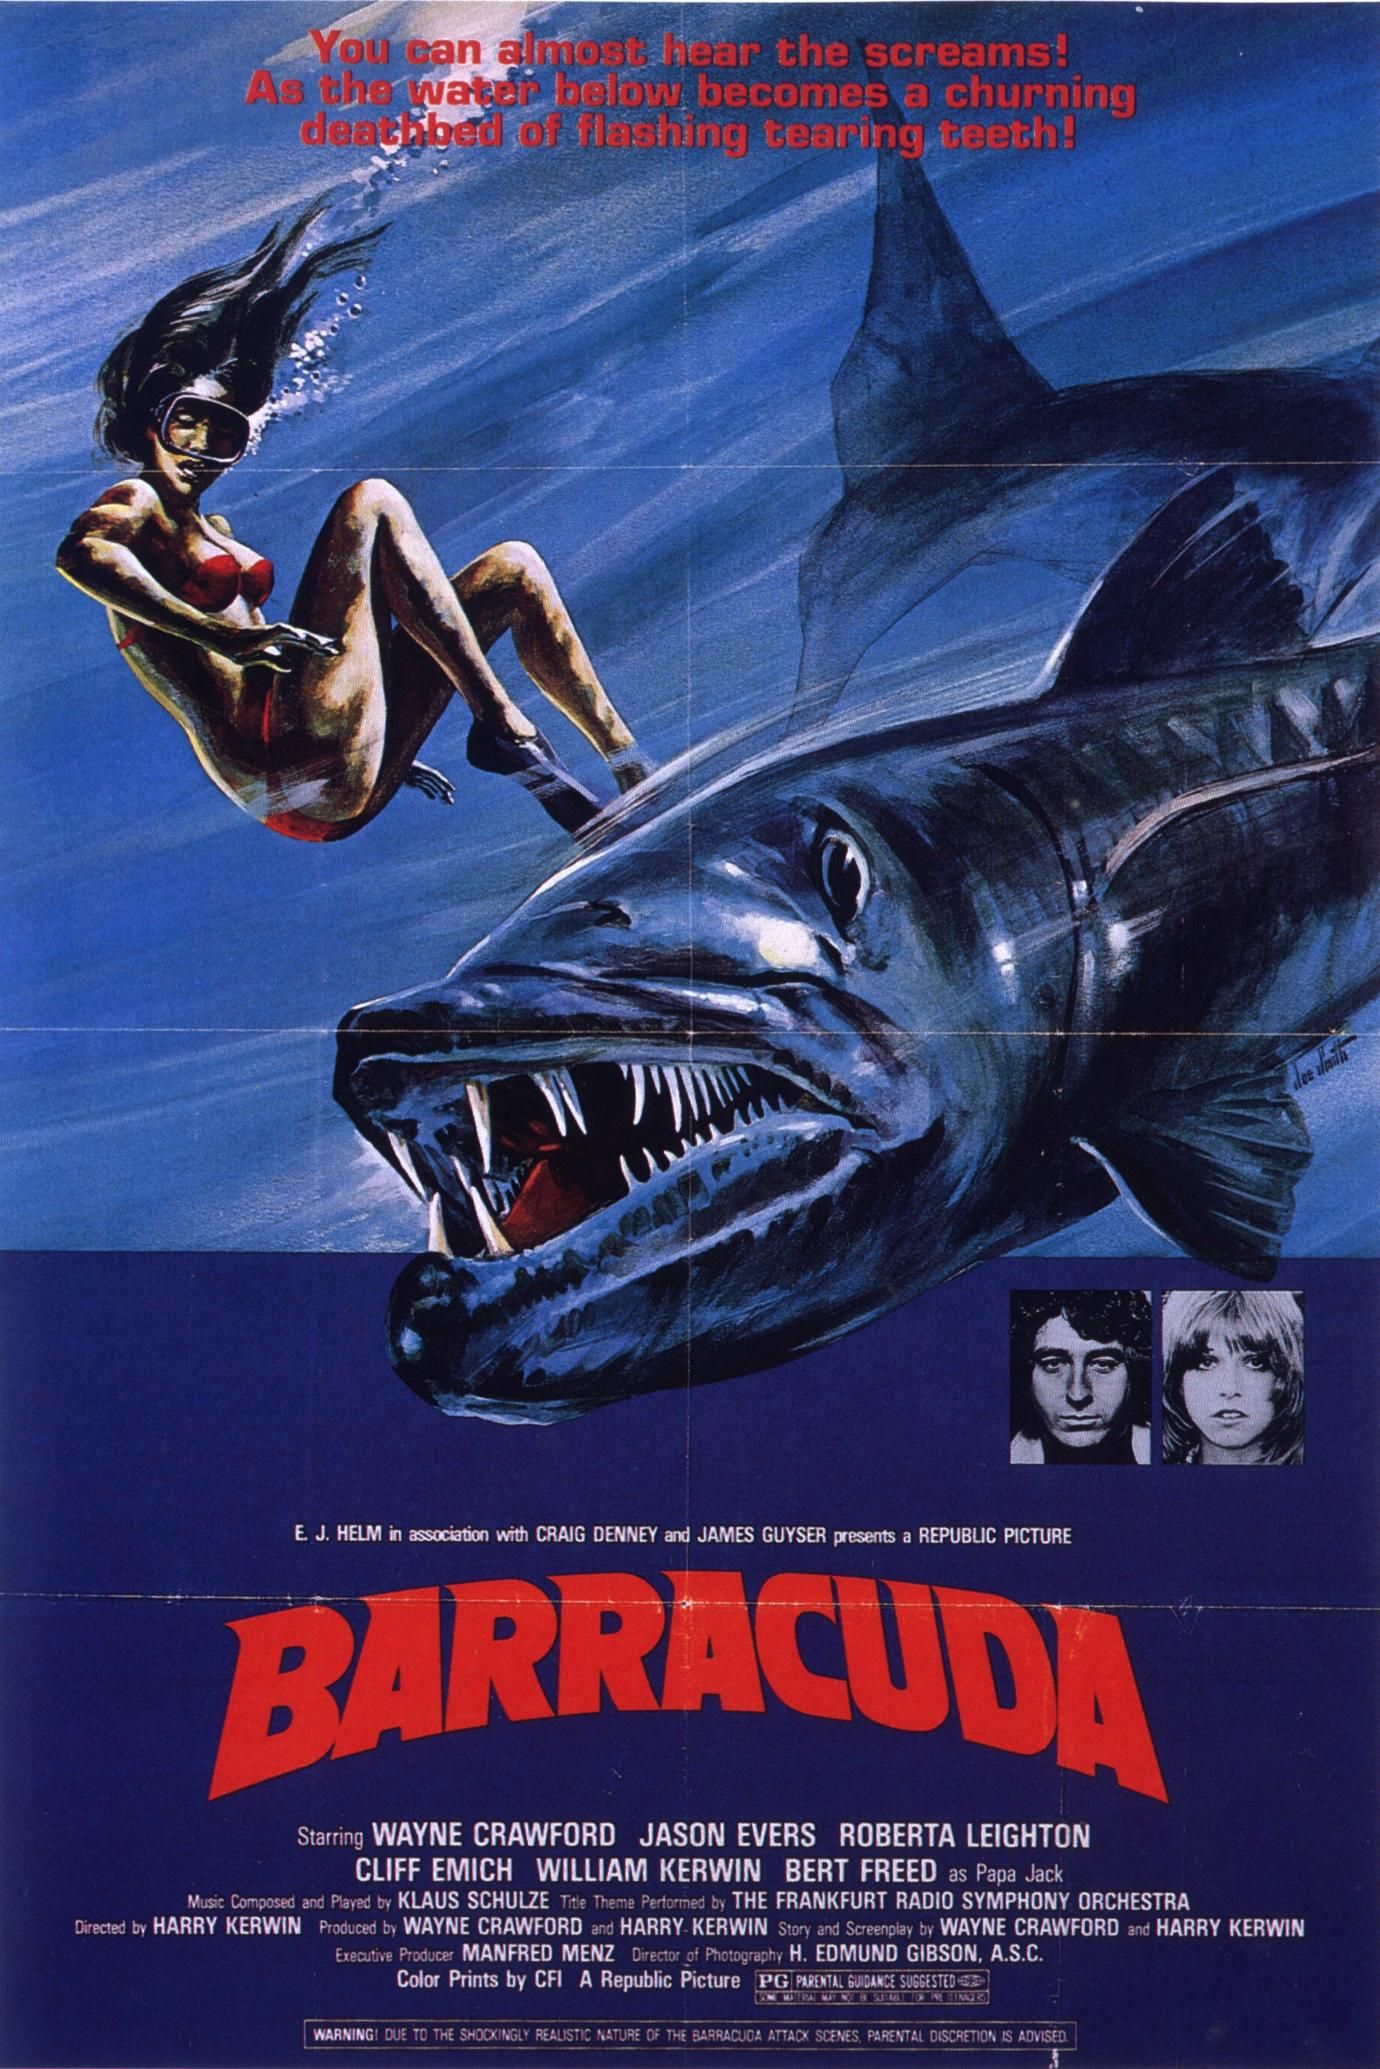 Barracuda (1978) Movie posters, Movie posters vintage